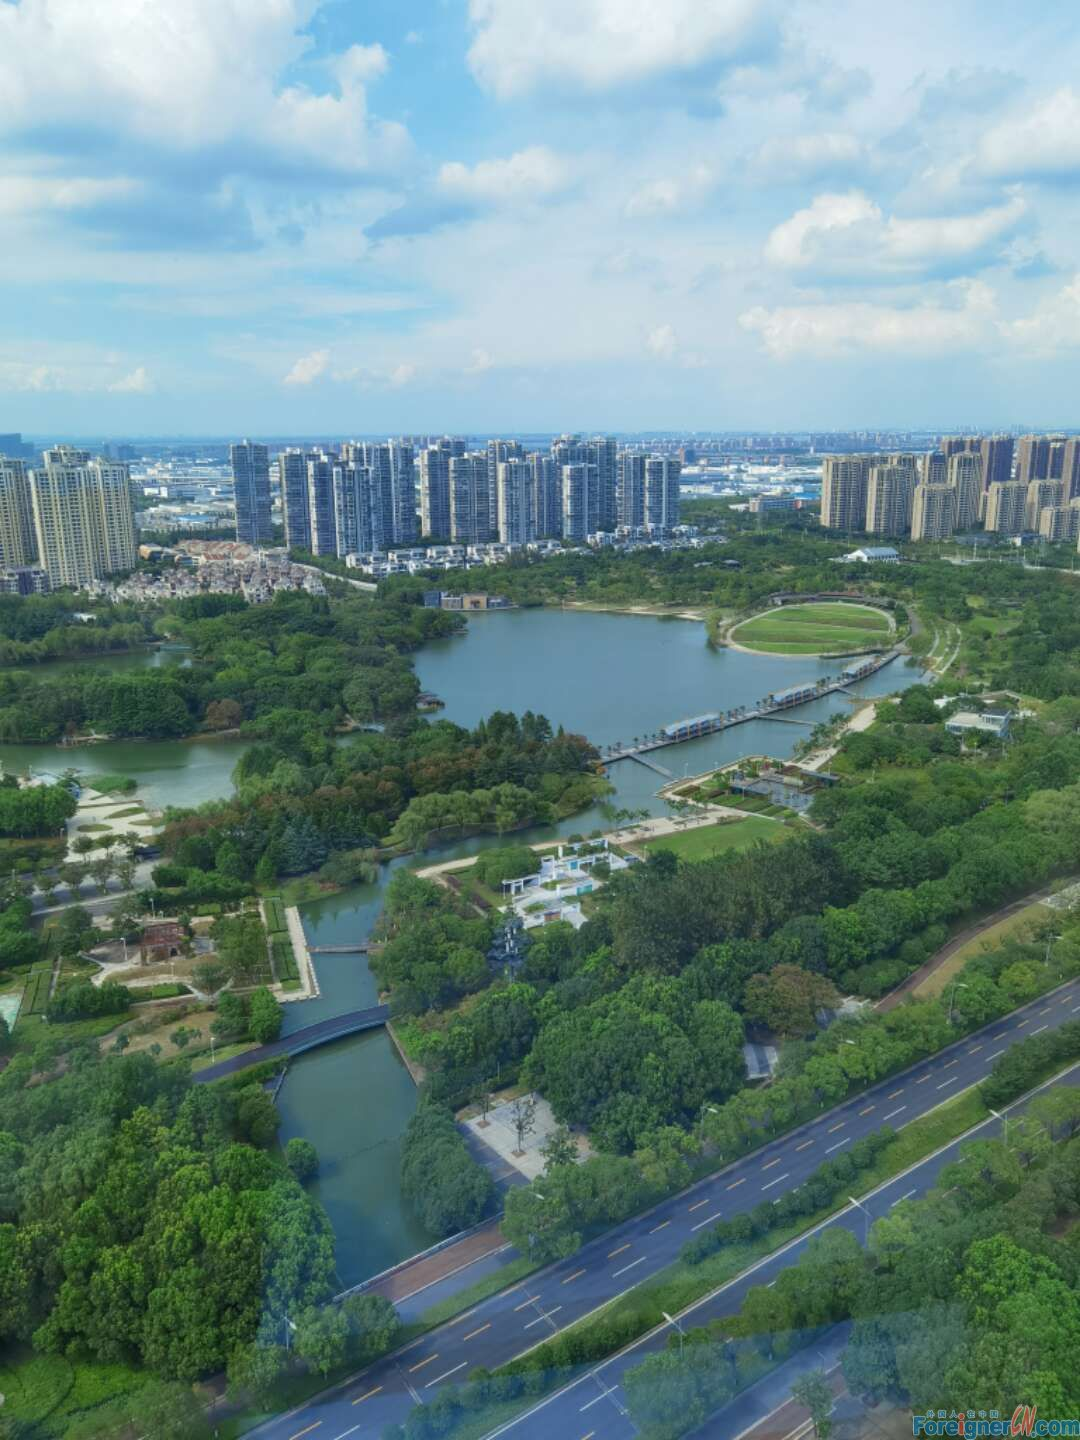 Great lake view/ Skyline Apartment/2brds&1 bath/Very close to Subway Line1 and Baitang Garden/Spacious and Clean/Modern western style